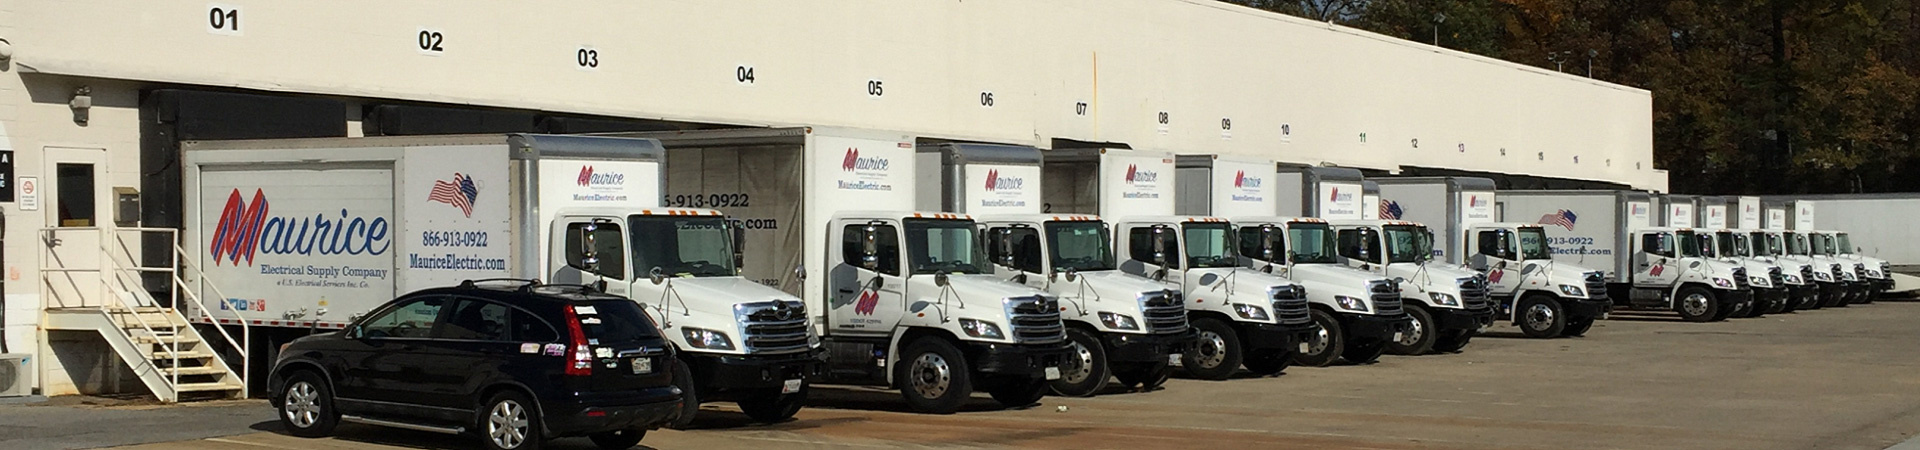 Our Fleet Of Delivery Trucks Have An Excellent Record Of Timely Deliveries  For Our Customers